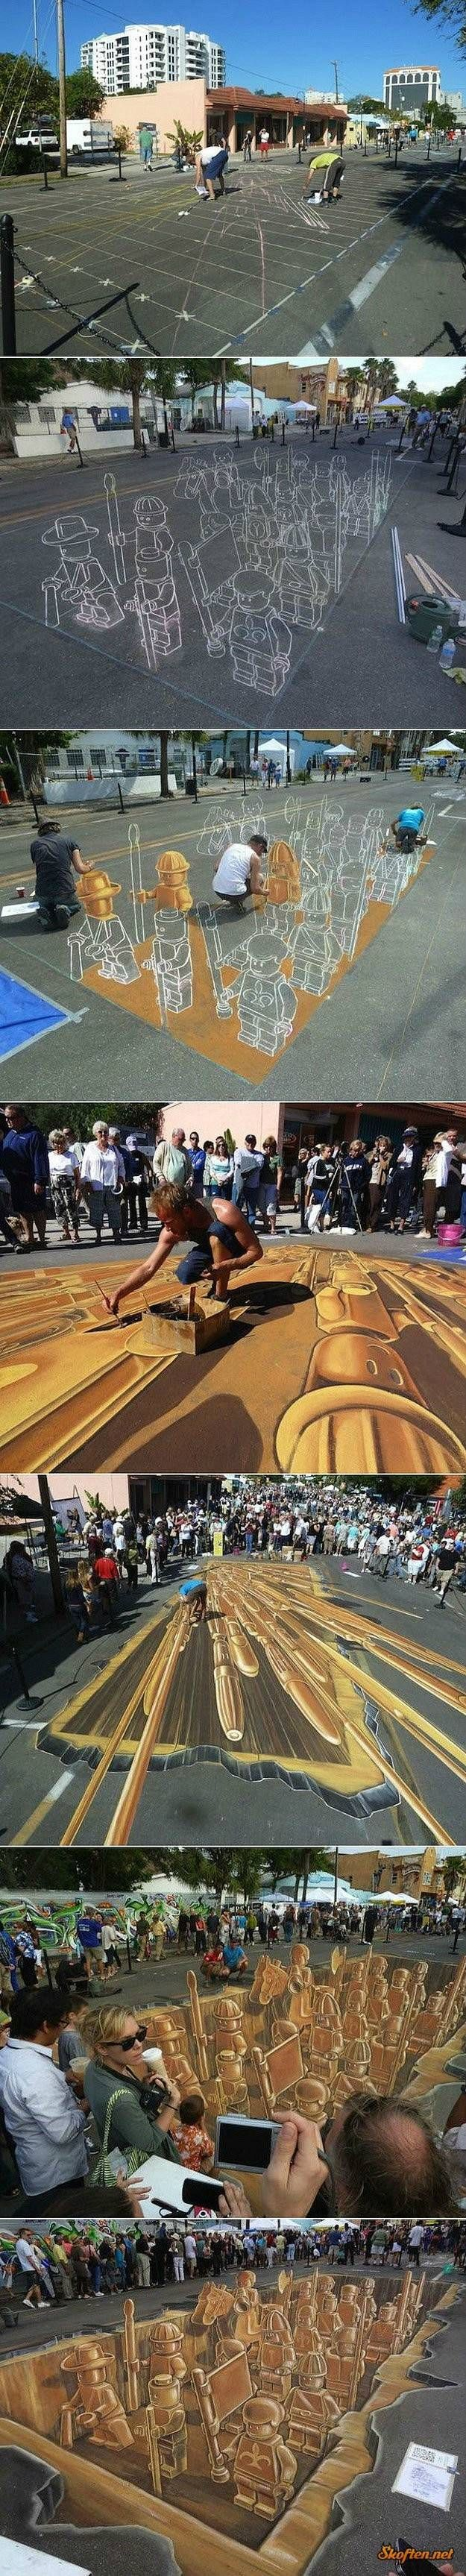 lego sidewalk drawing